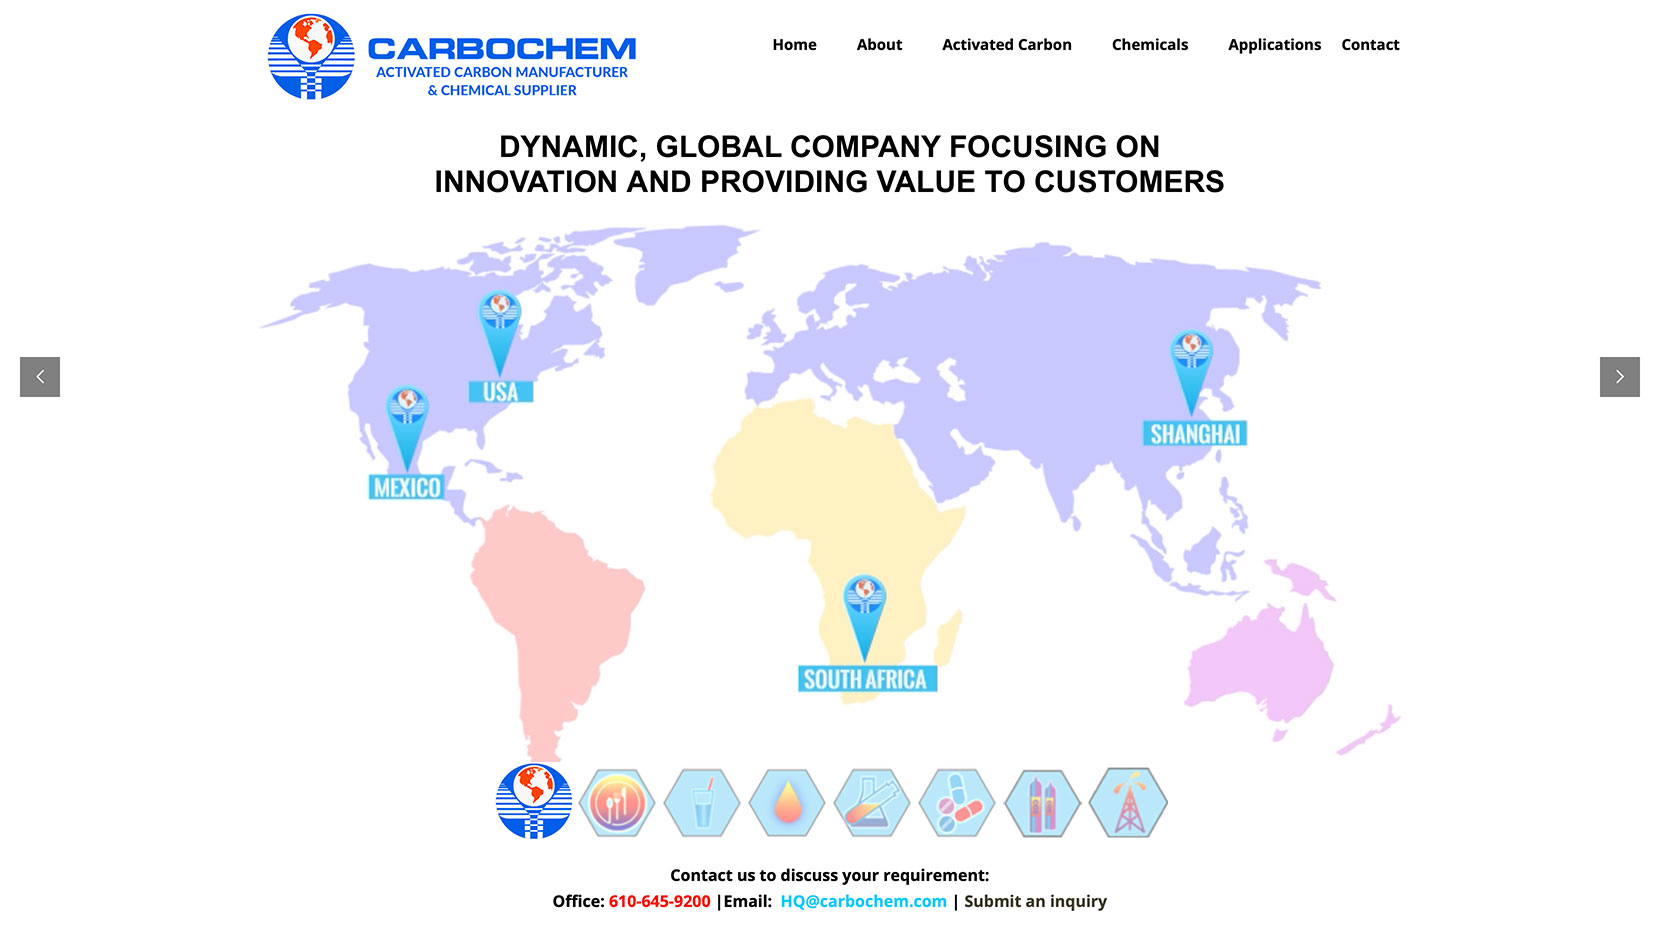 Carbochem - Website: https://carbochem.com